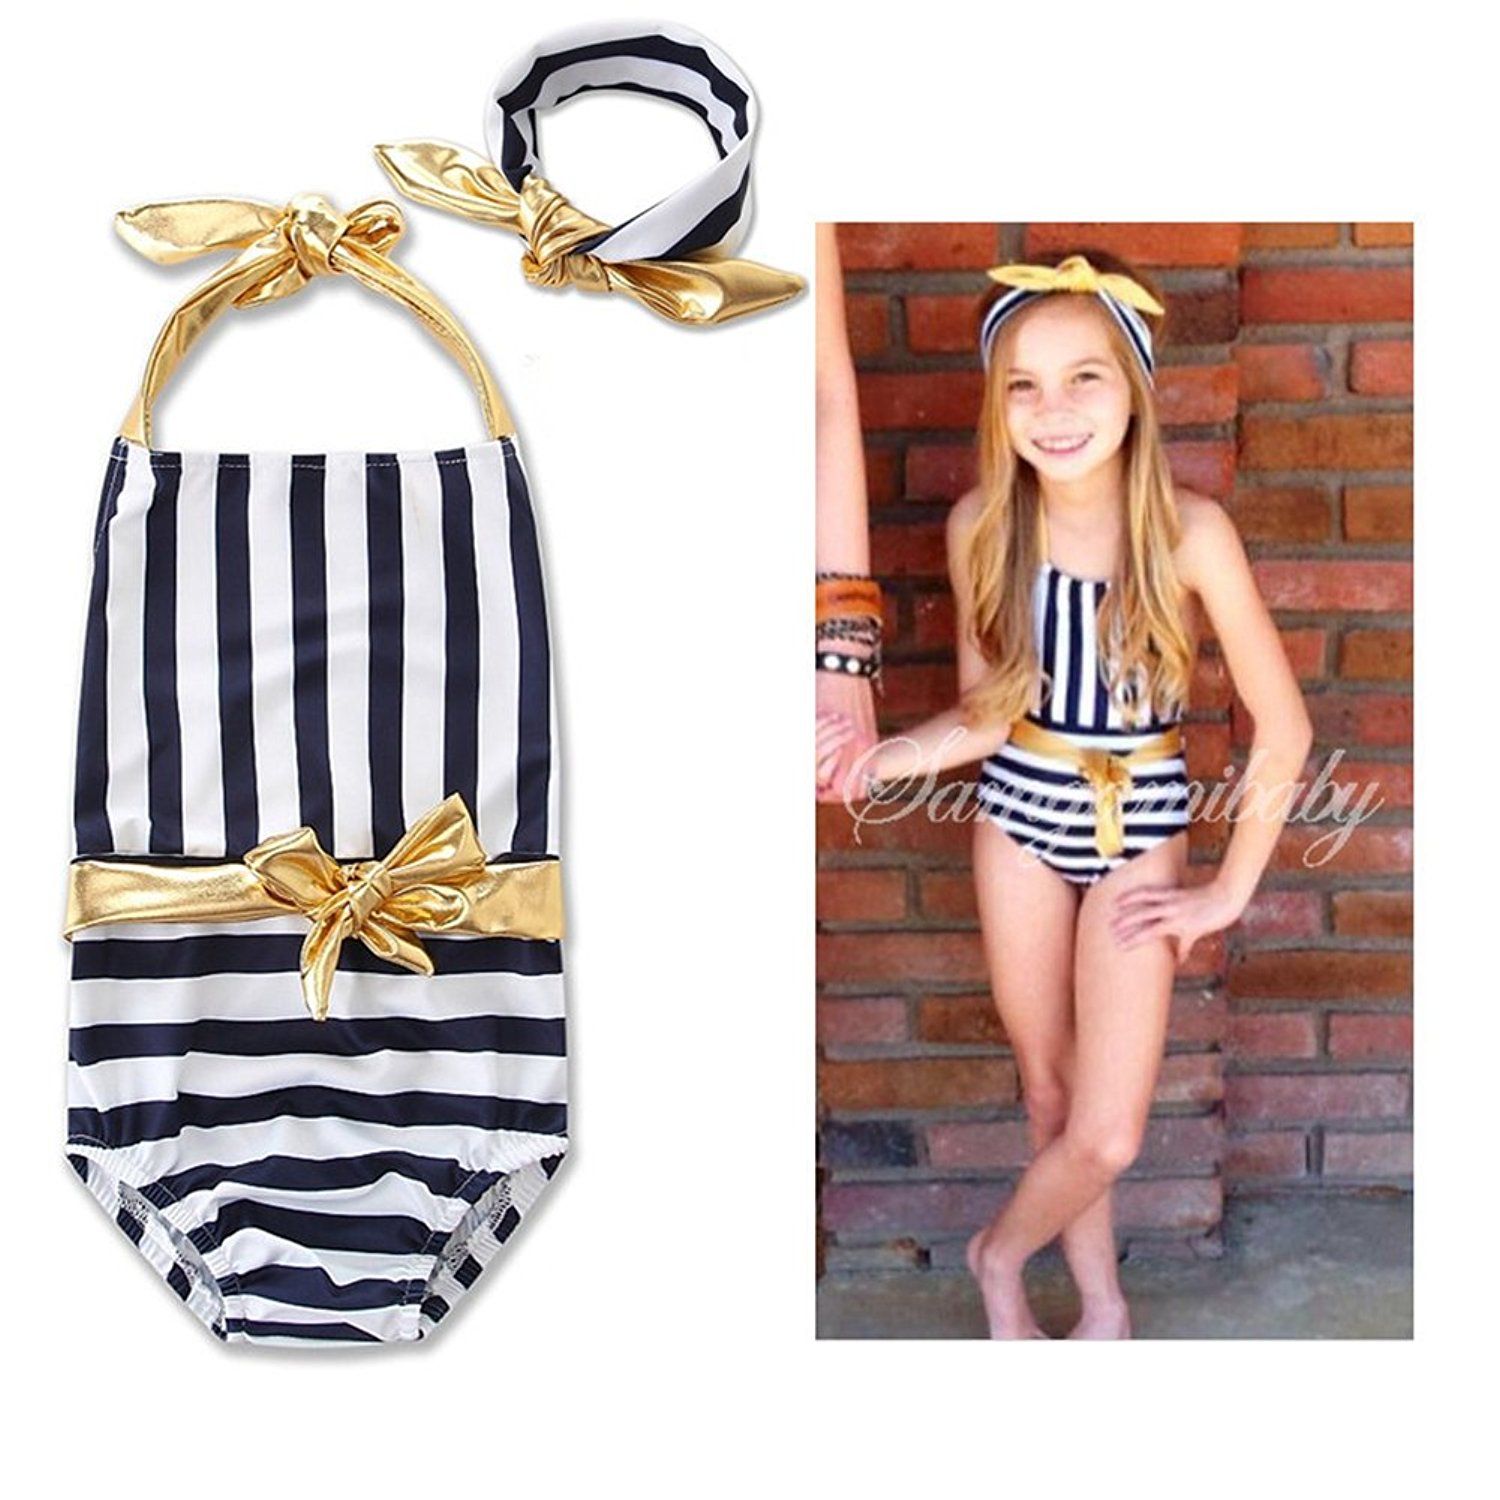 f008a49a4e932 BERTERI One-Piece Cute Striped Swimsuit with Gold Bow Bathing Suits Bikini  Swimwear for Baby Girls/Kid/Toddler/Infant/Children Take Photos Summmer  Beach ...